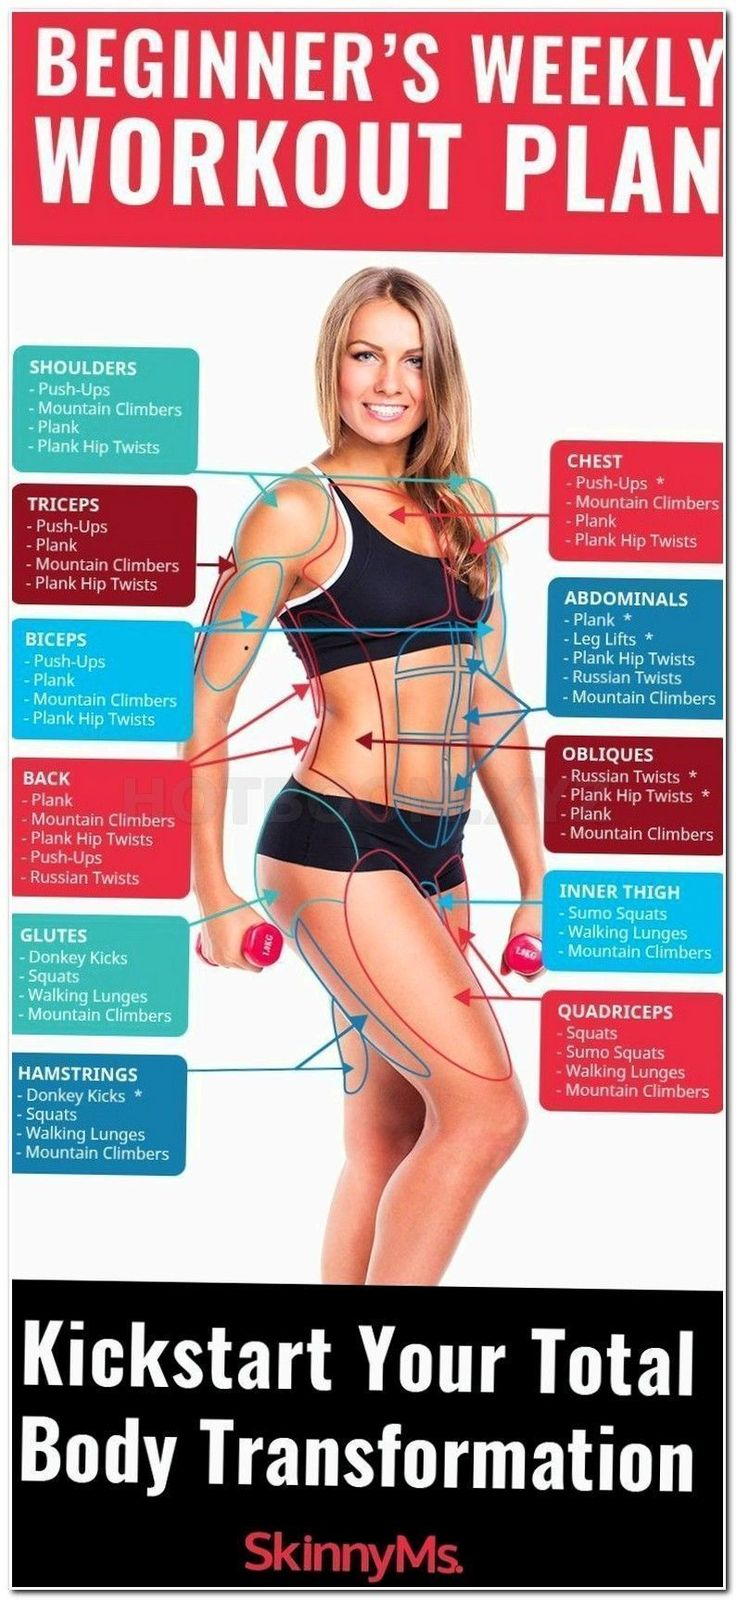 curves for women location, 10 dollar fitness, best home exercises for abs, gyms in cork ireland, j womens healt, carmel fitness cente, best muscle building workout plan, quick weight loss tricks, female fitness models australia, male model workout and die #femalefitnessmodels #fitnessmodels